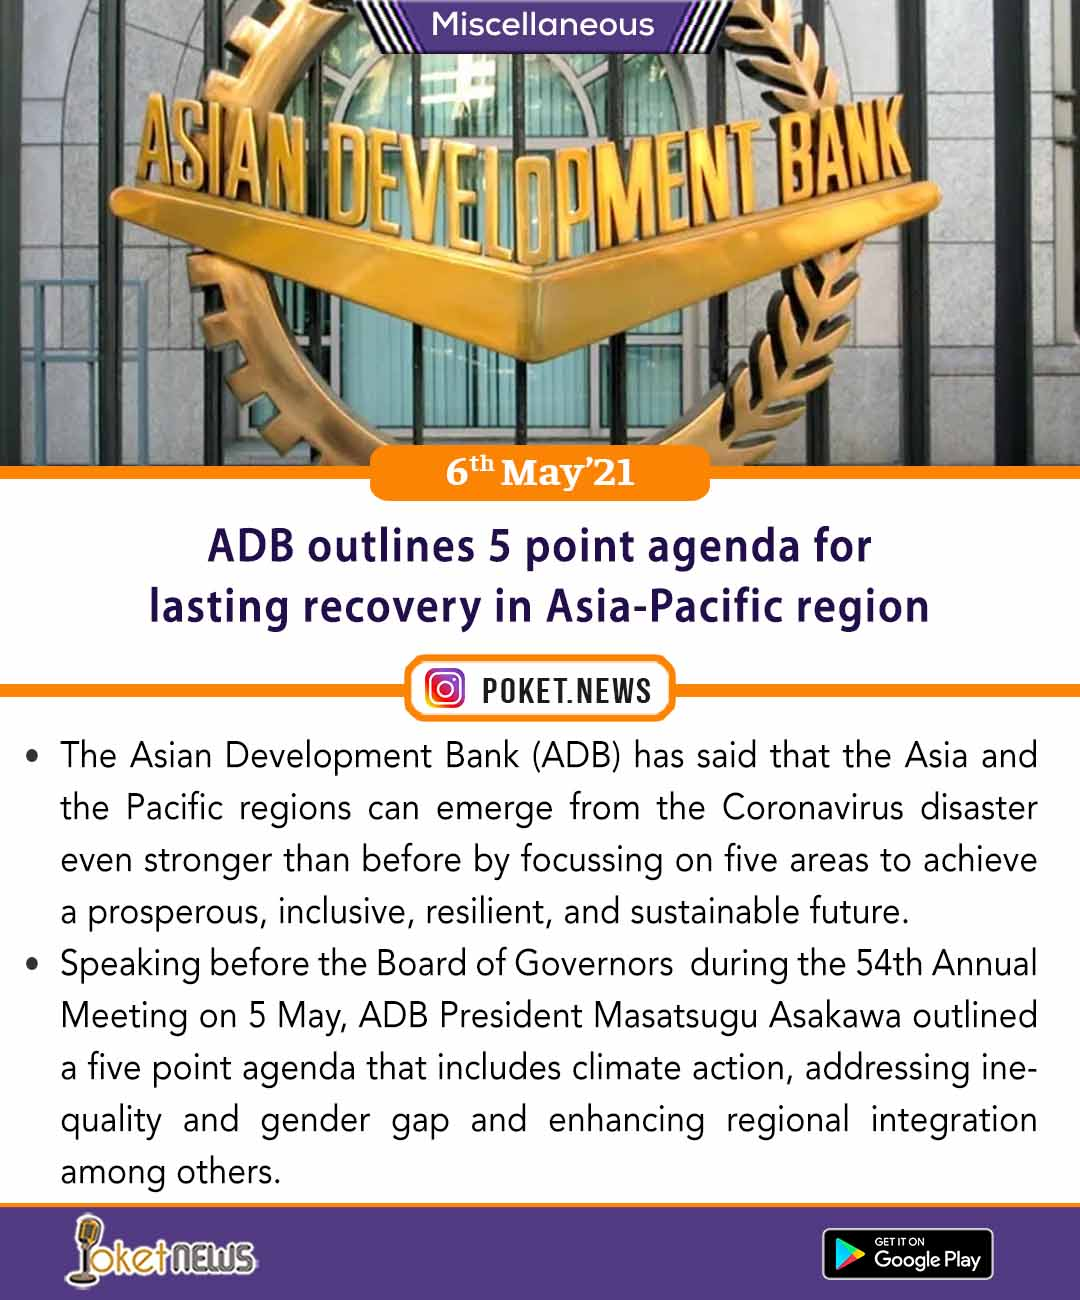 ADB outlines 5 point agenda for lasting recovery in Asia-Pacific region